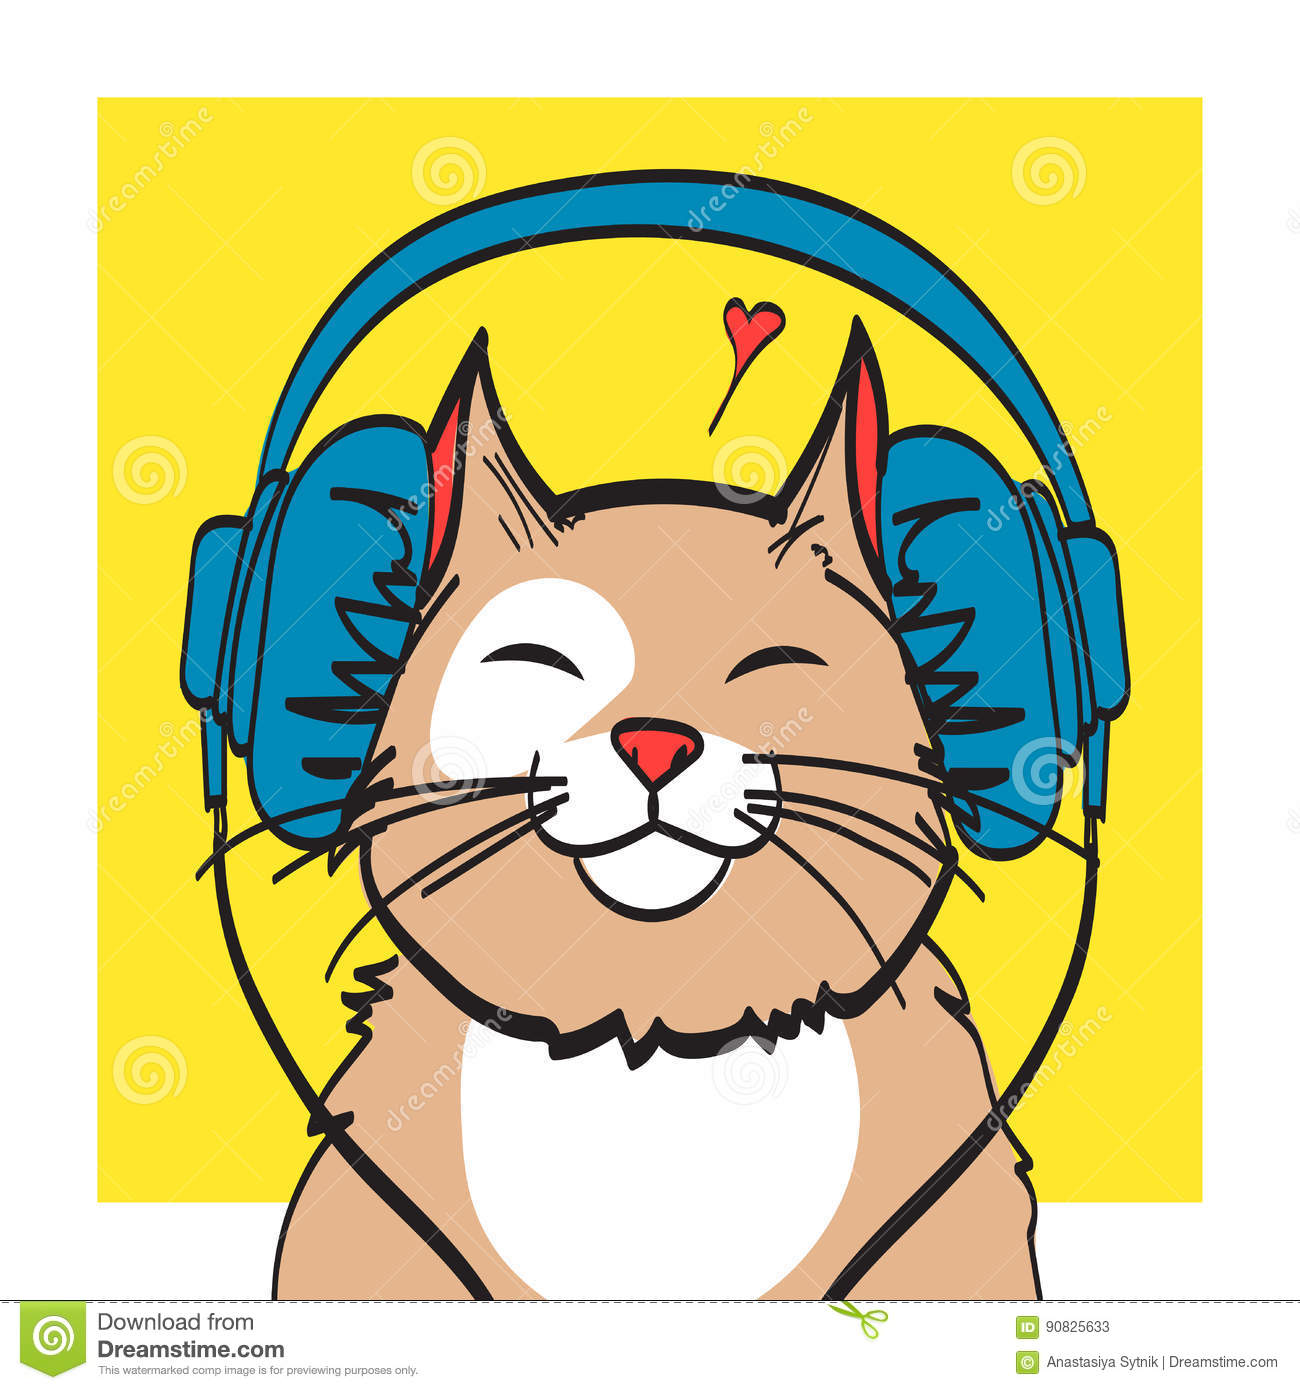 cool vector art of cat with headphone music picture eps 10 on rh dreamstime com cool vector artwork cool vector art tutorials